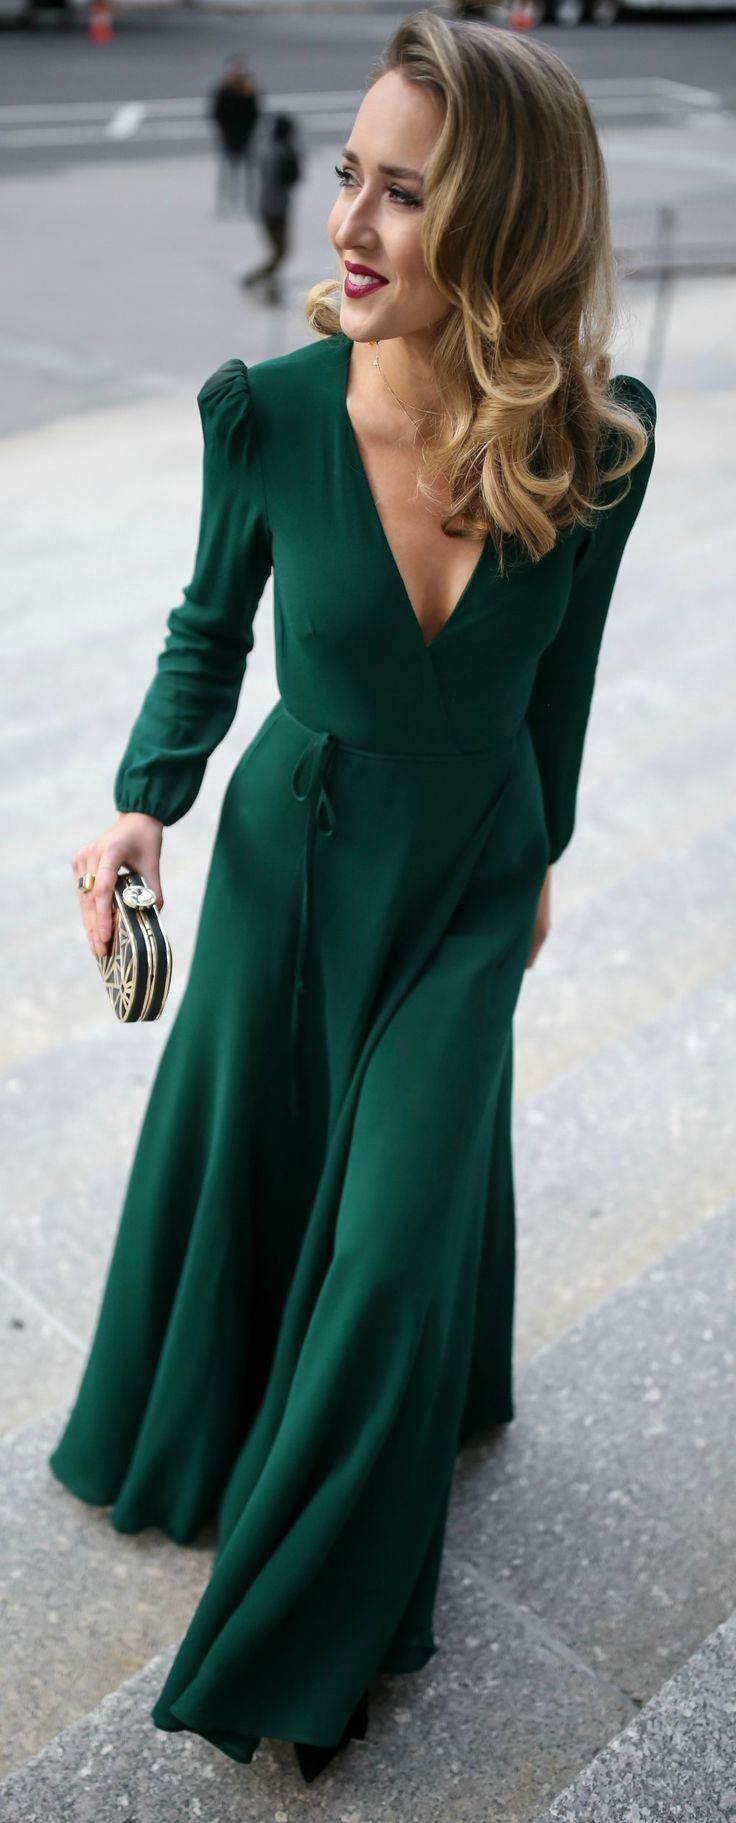 Emerald green long-sleeve floor-length wrap dress, black and gold geometric pattern evening clutch, multicolor beaded statement earrings, black velvet kitten heel pumps with bow detail {Miu Miu, Zara, Reformation, black tie wedding, formal wedding guest,